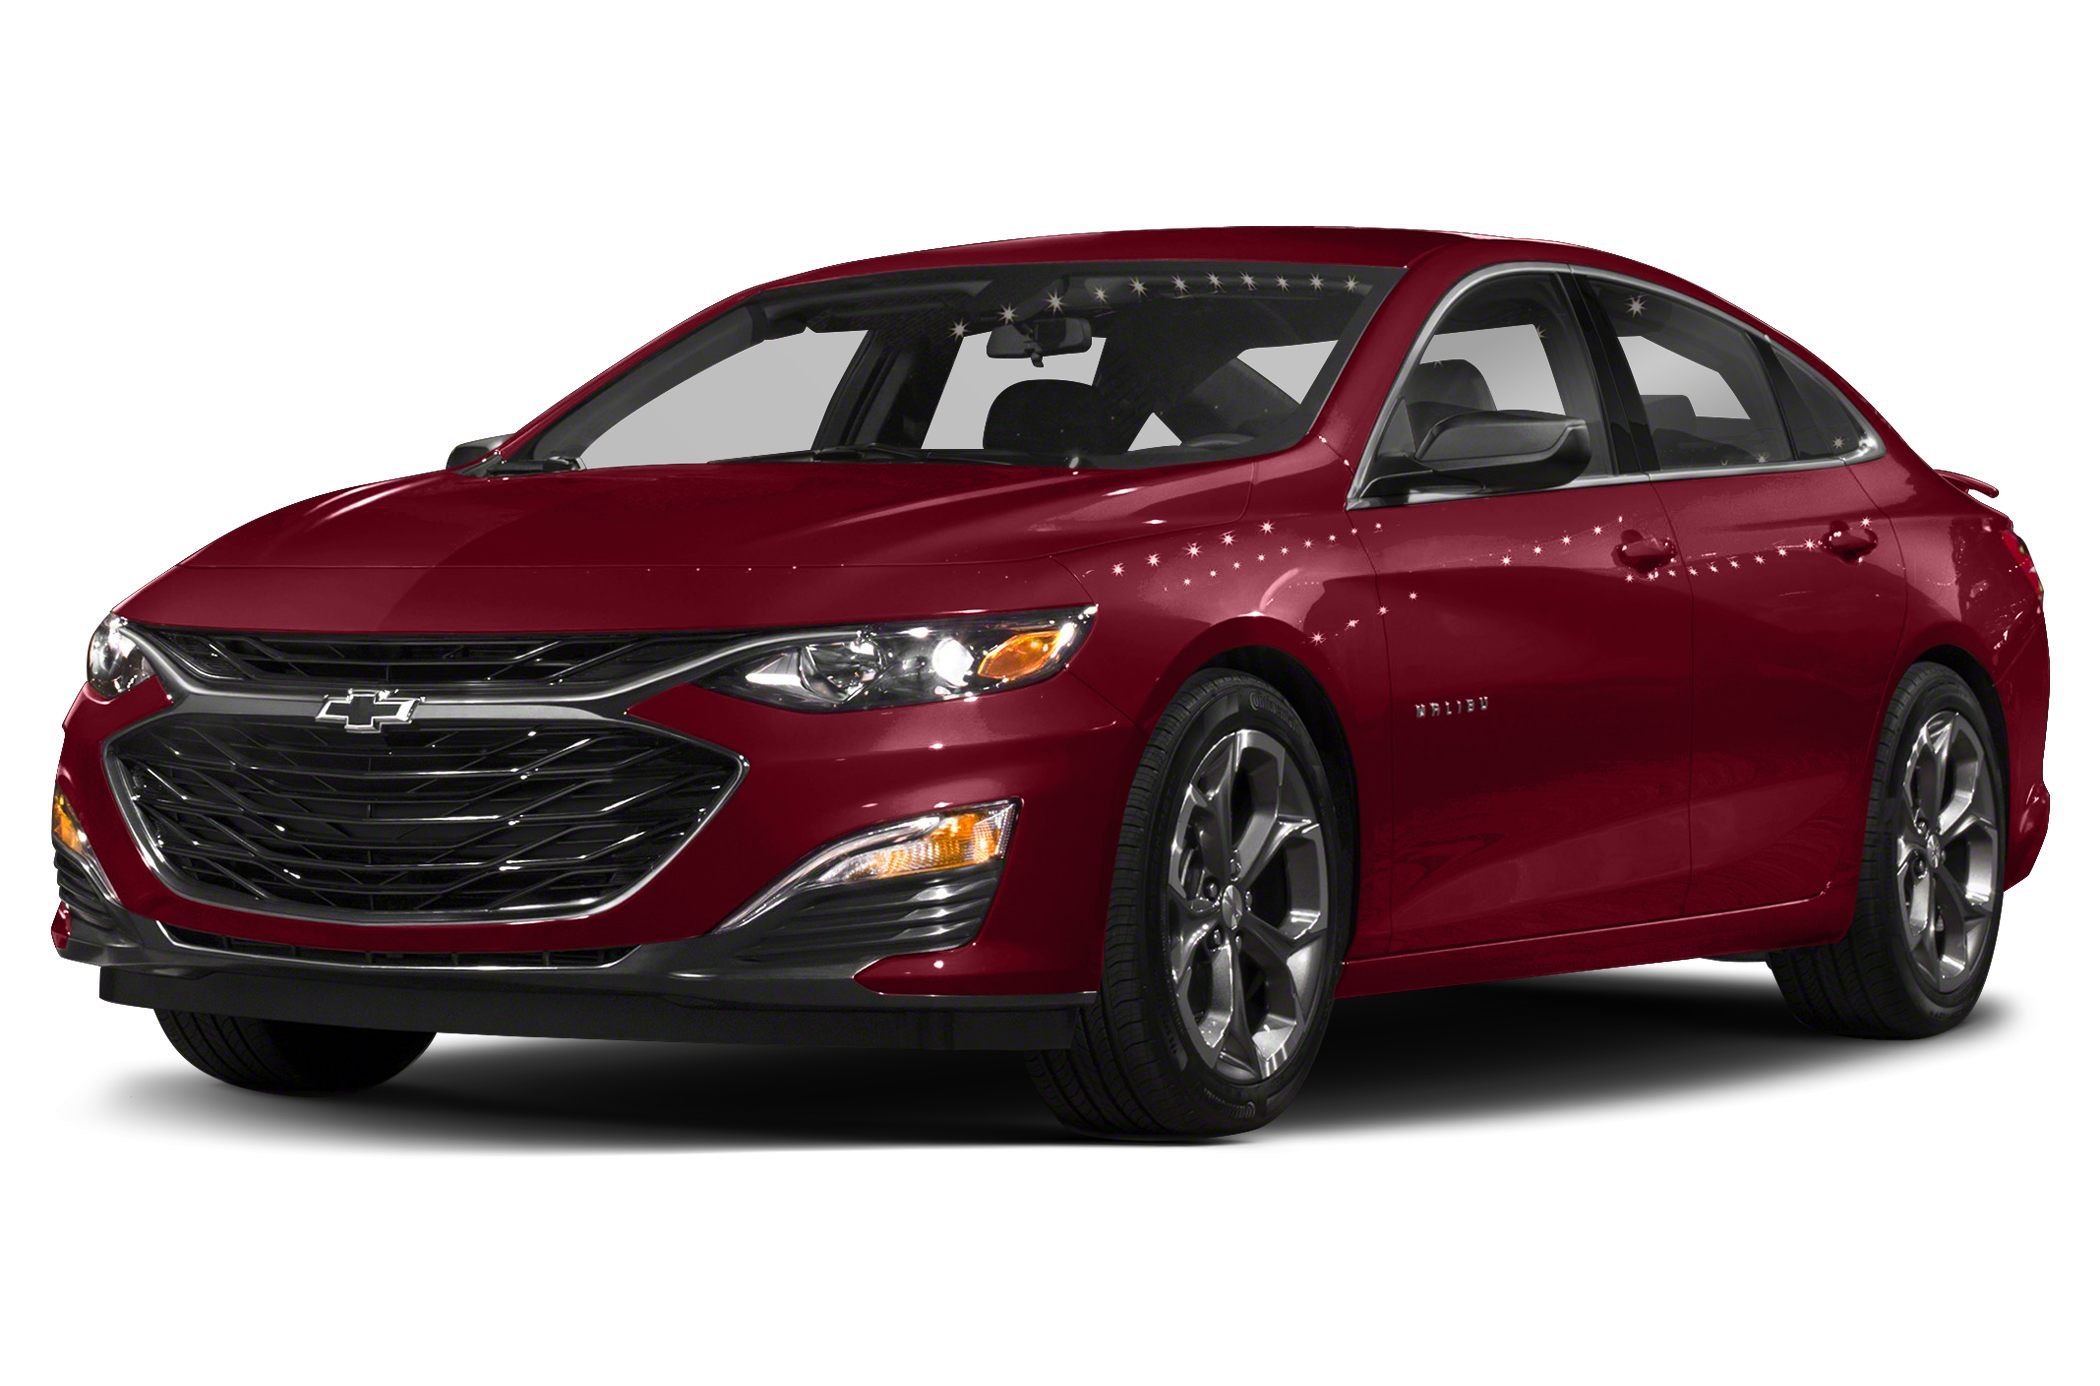 Chevy Malibu most recalled of GM cars this year, not Cobalt